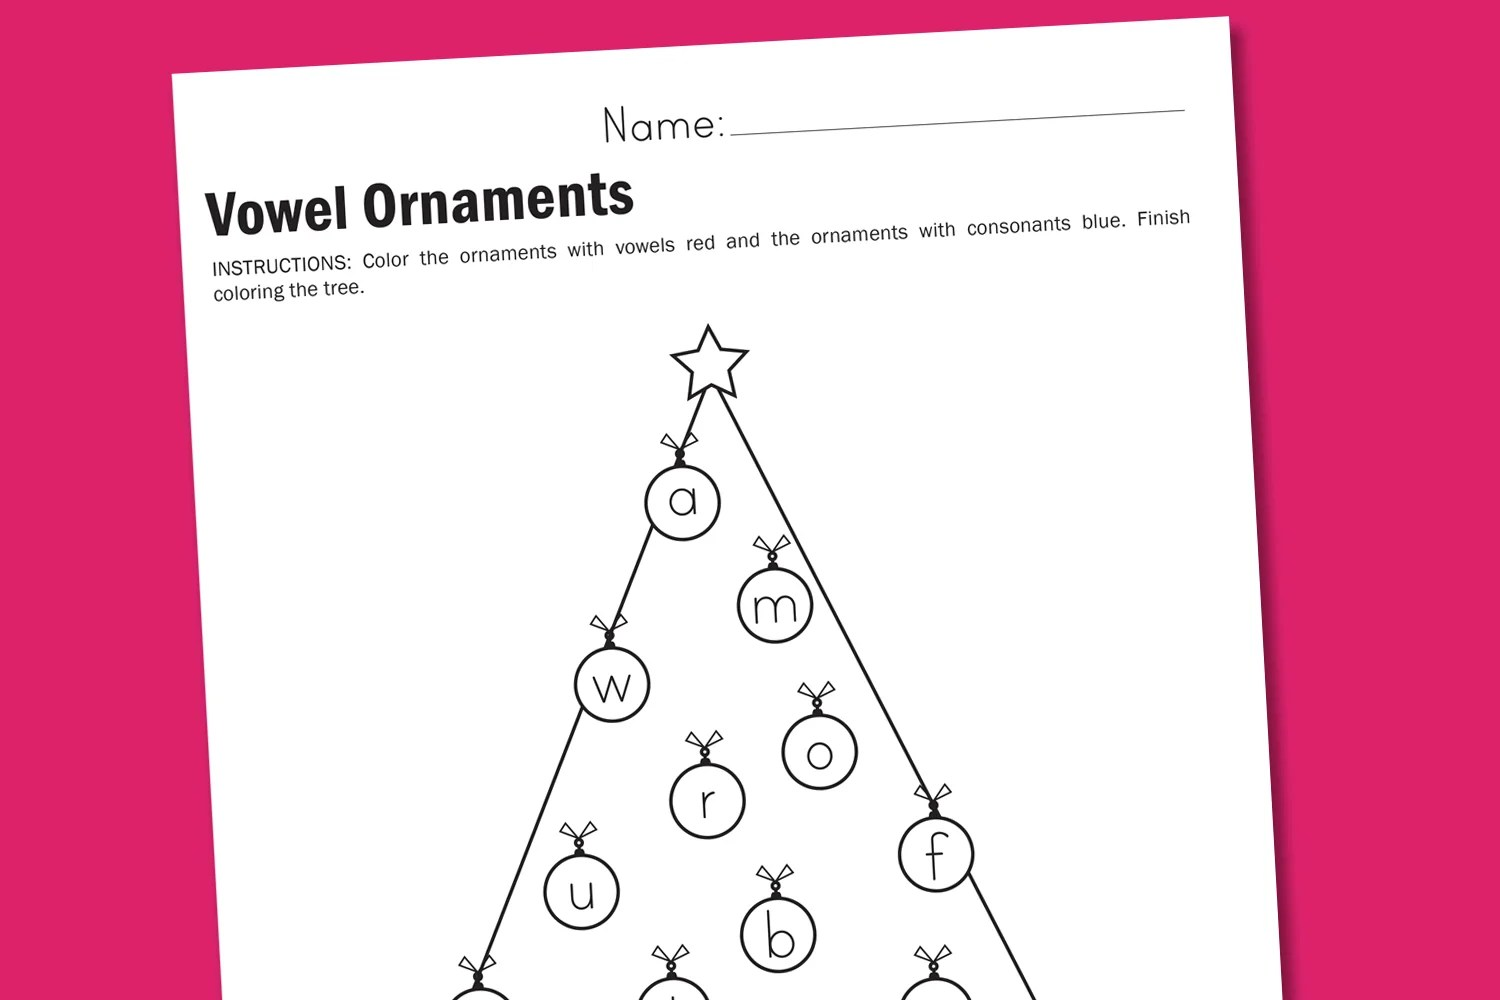 Worksheet Wednesday Vowel Ornaments